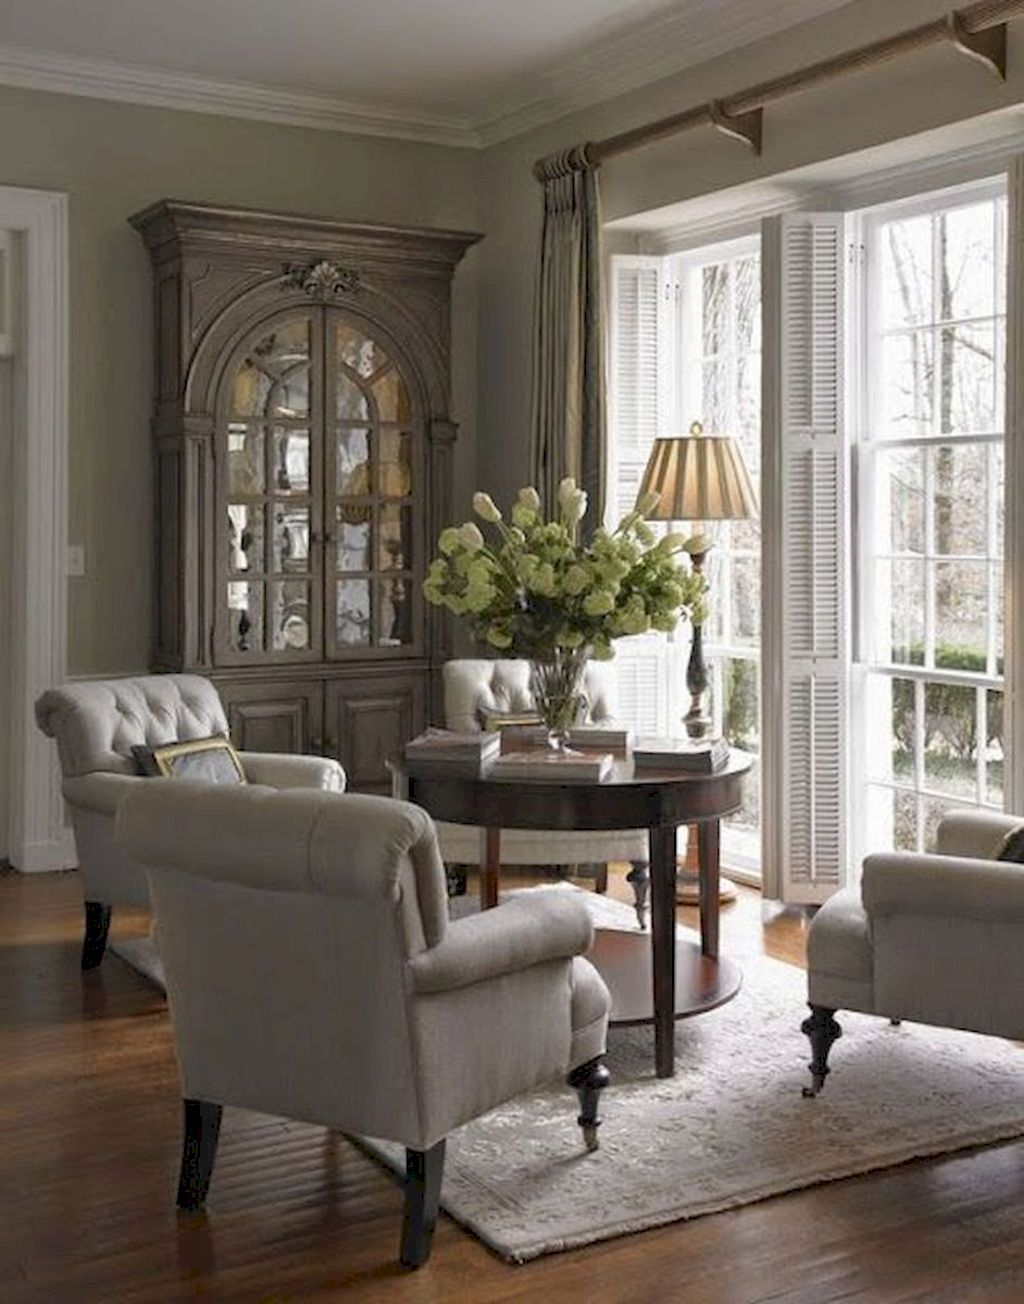 Photo of 65 Charming French Country Home Decor Ideas – Insidexterior